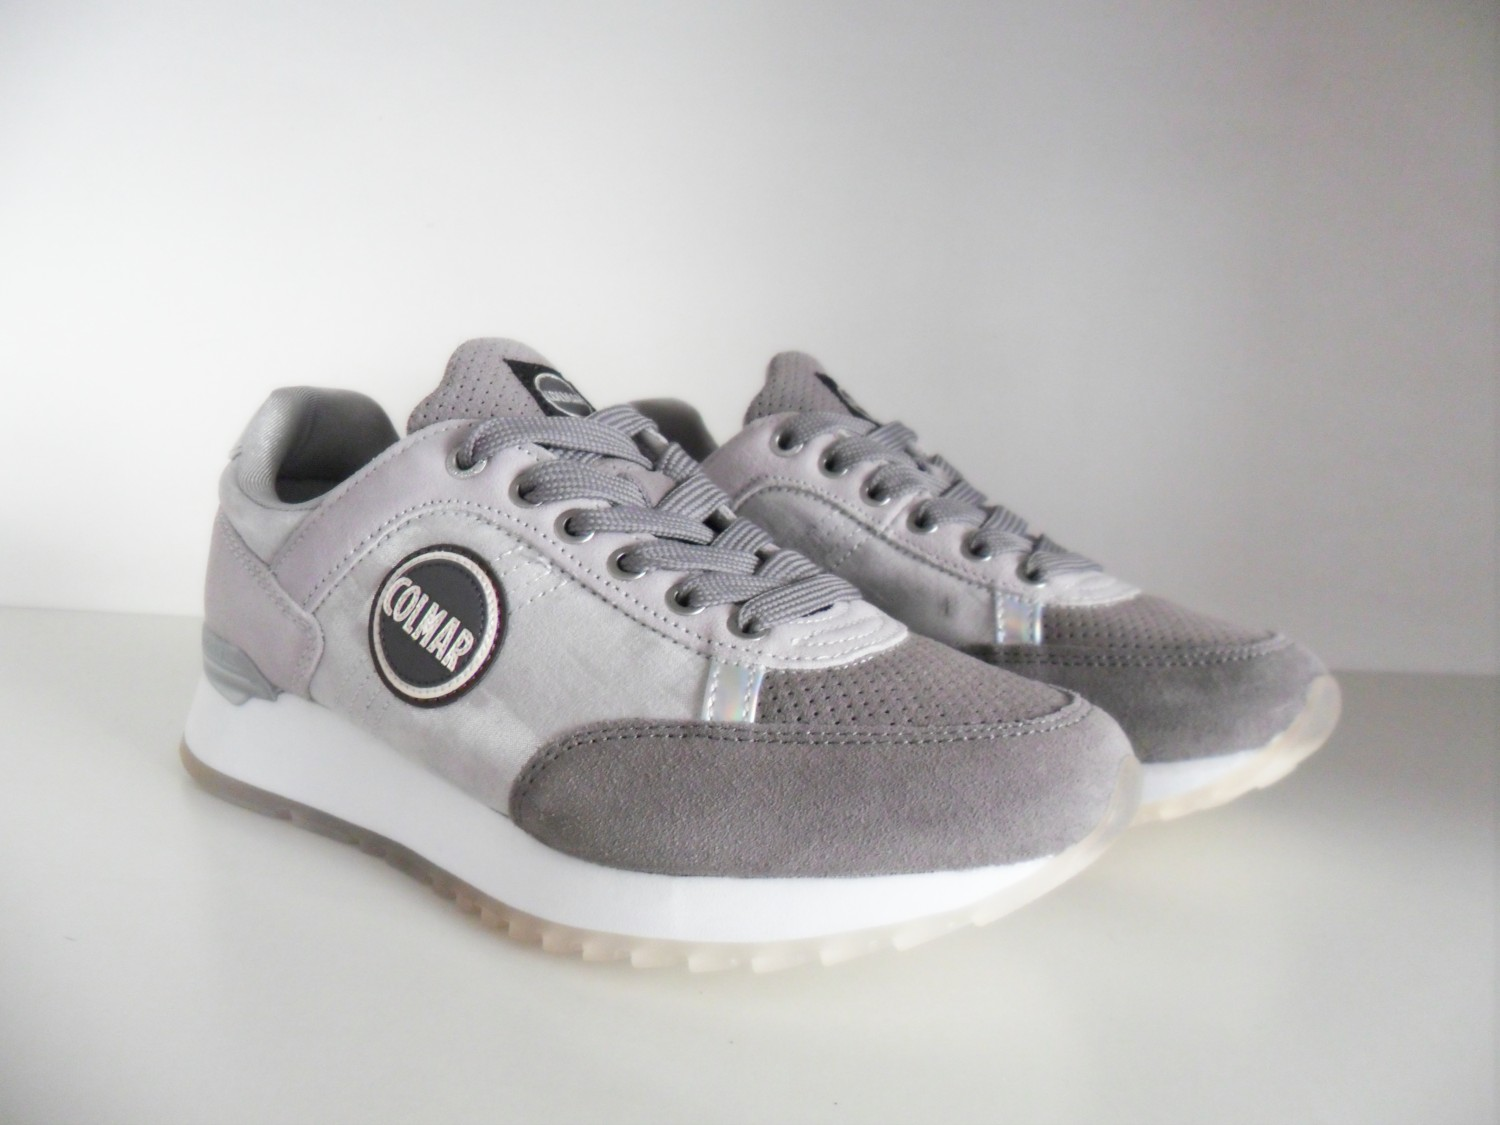 TRAVIS PUNK 119 DARK GREYSILVER SNEAKERS DONNA IN PELLE E CAMOSCIO